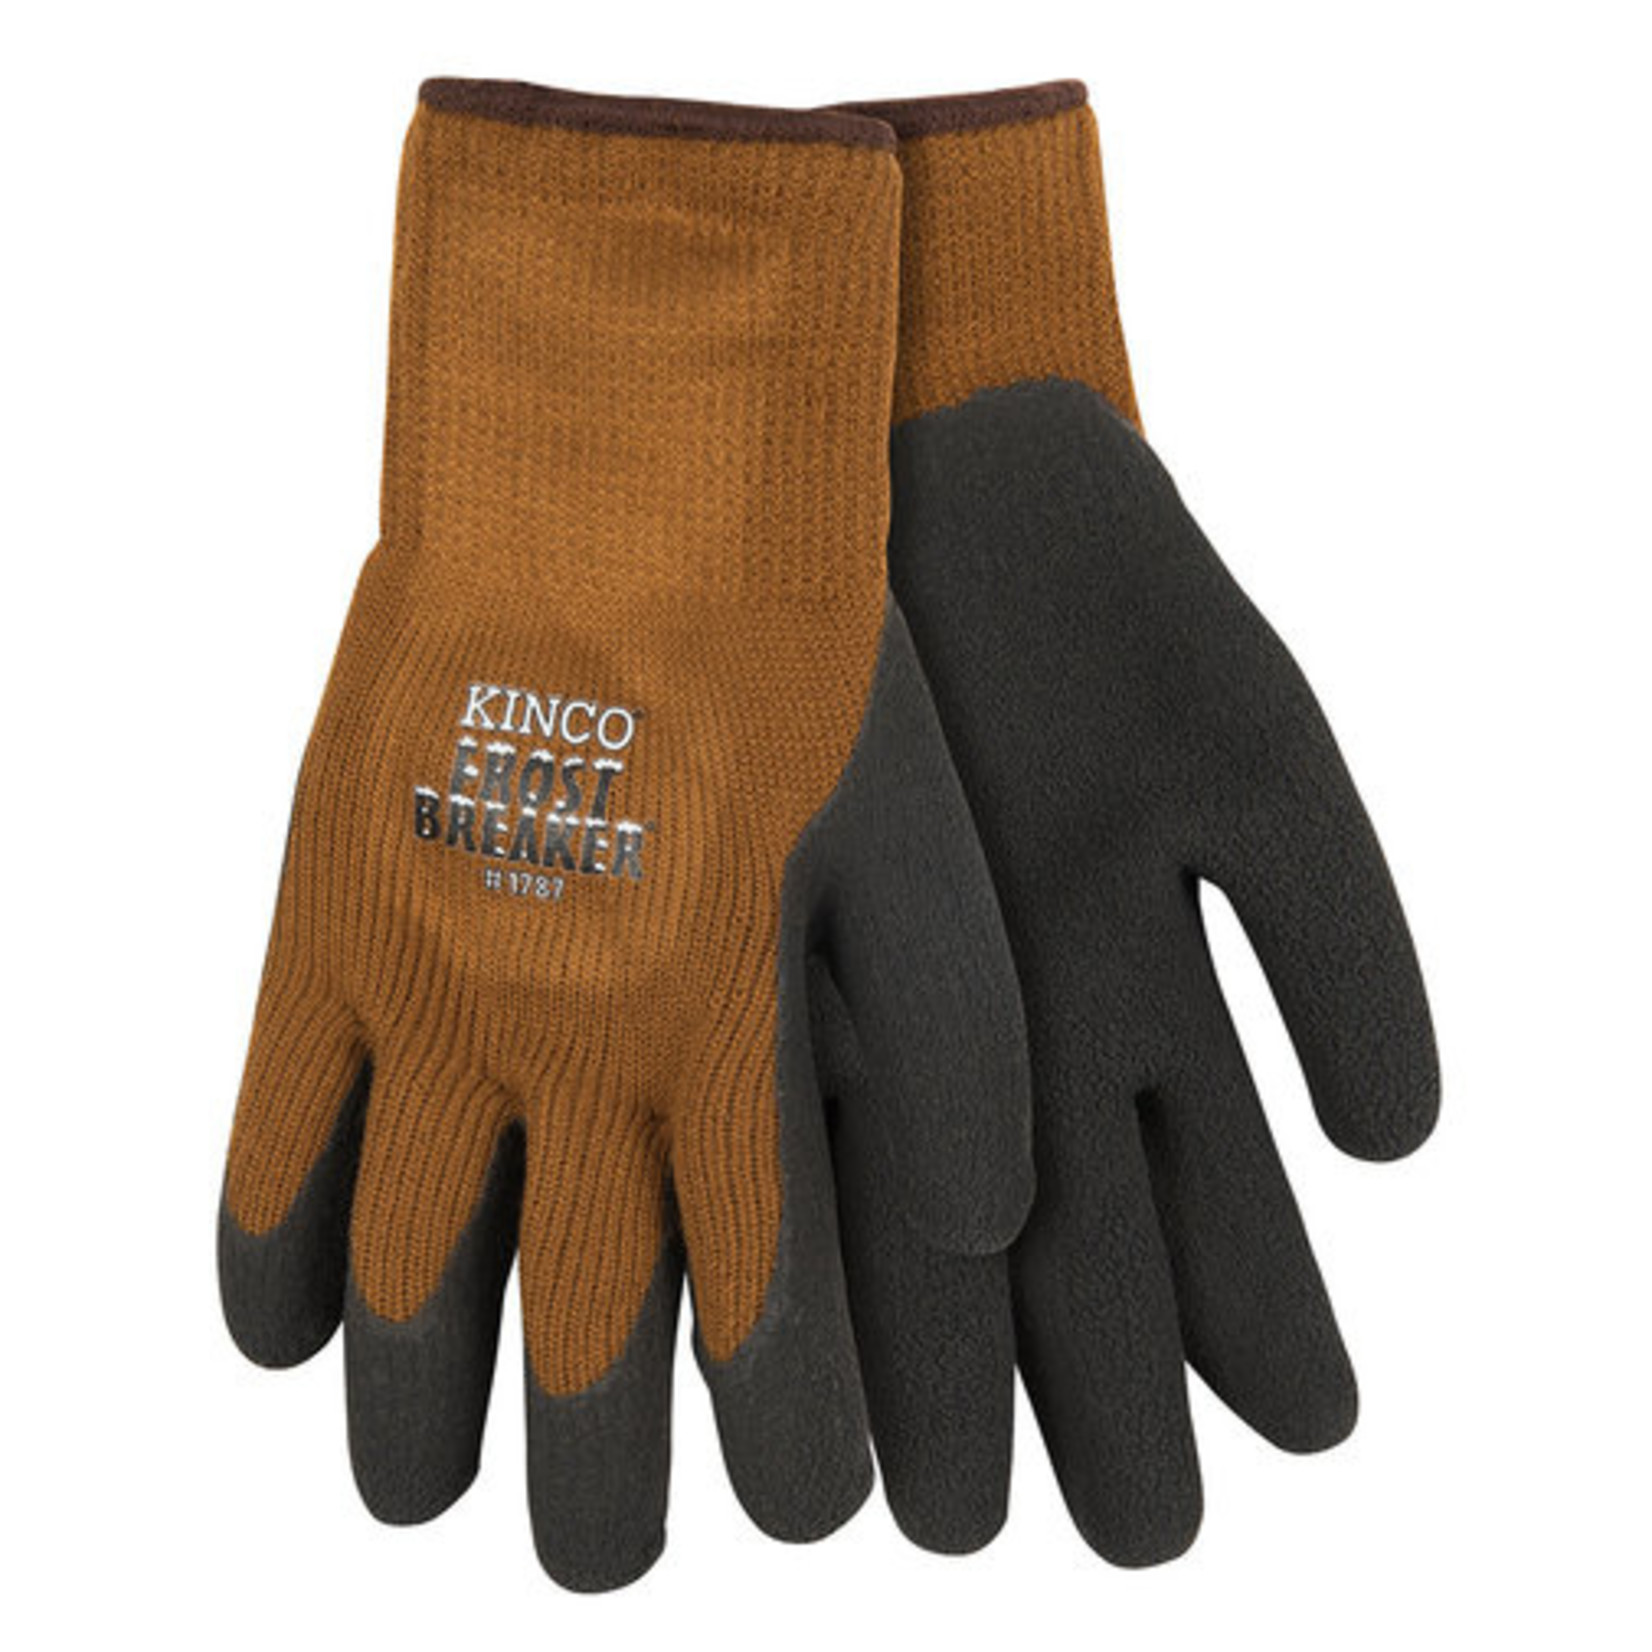 Frost Breaker Thermal Glove - Small